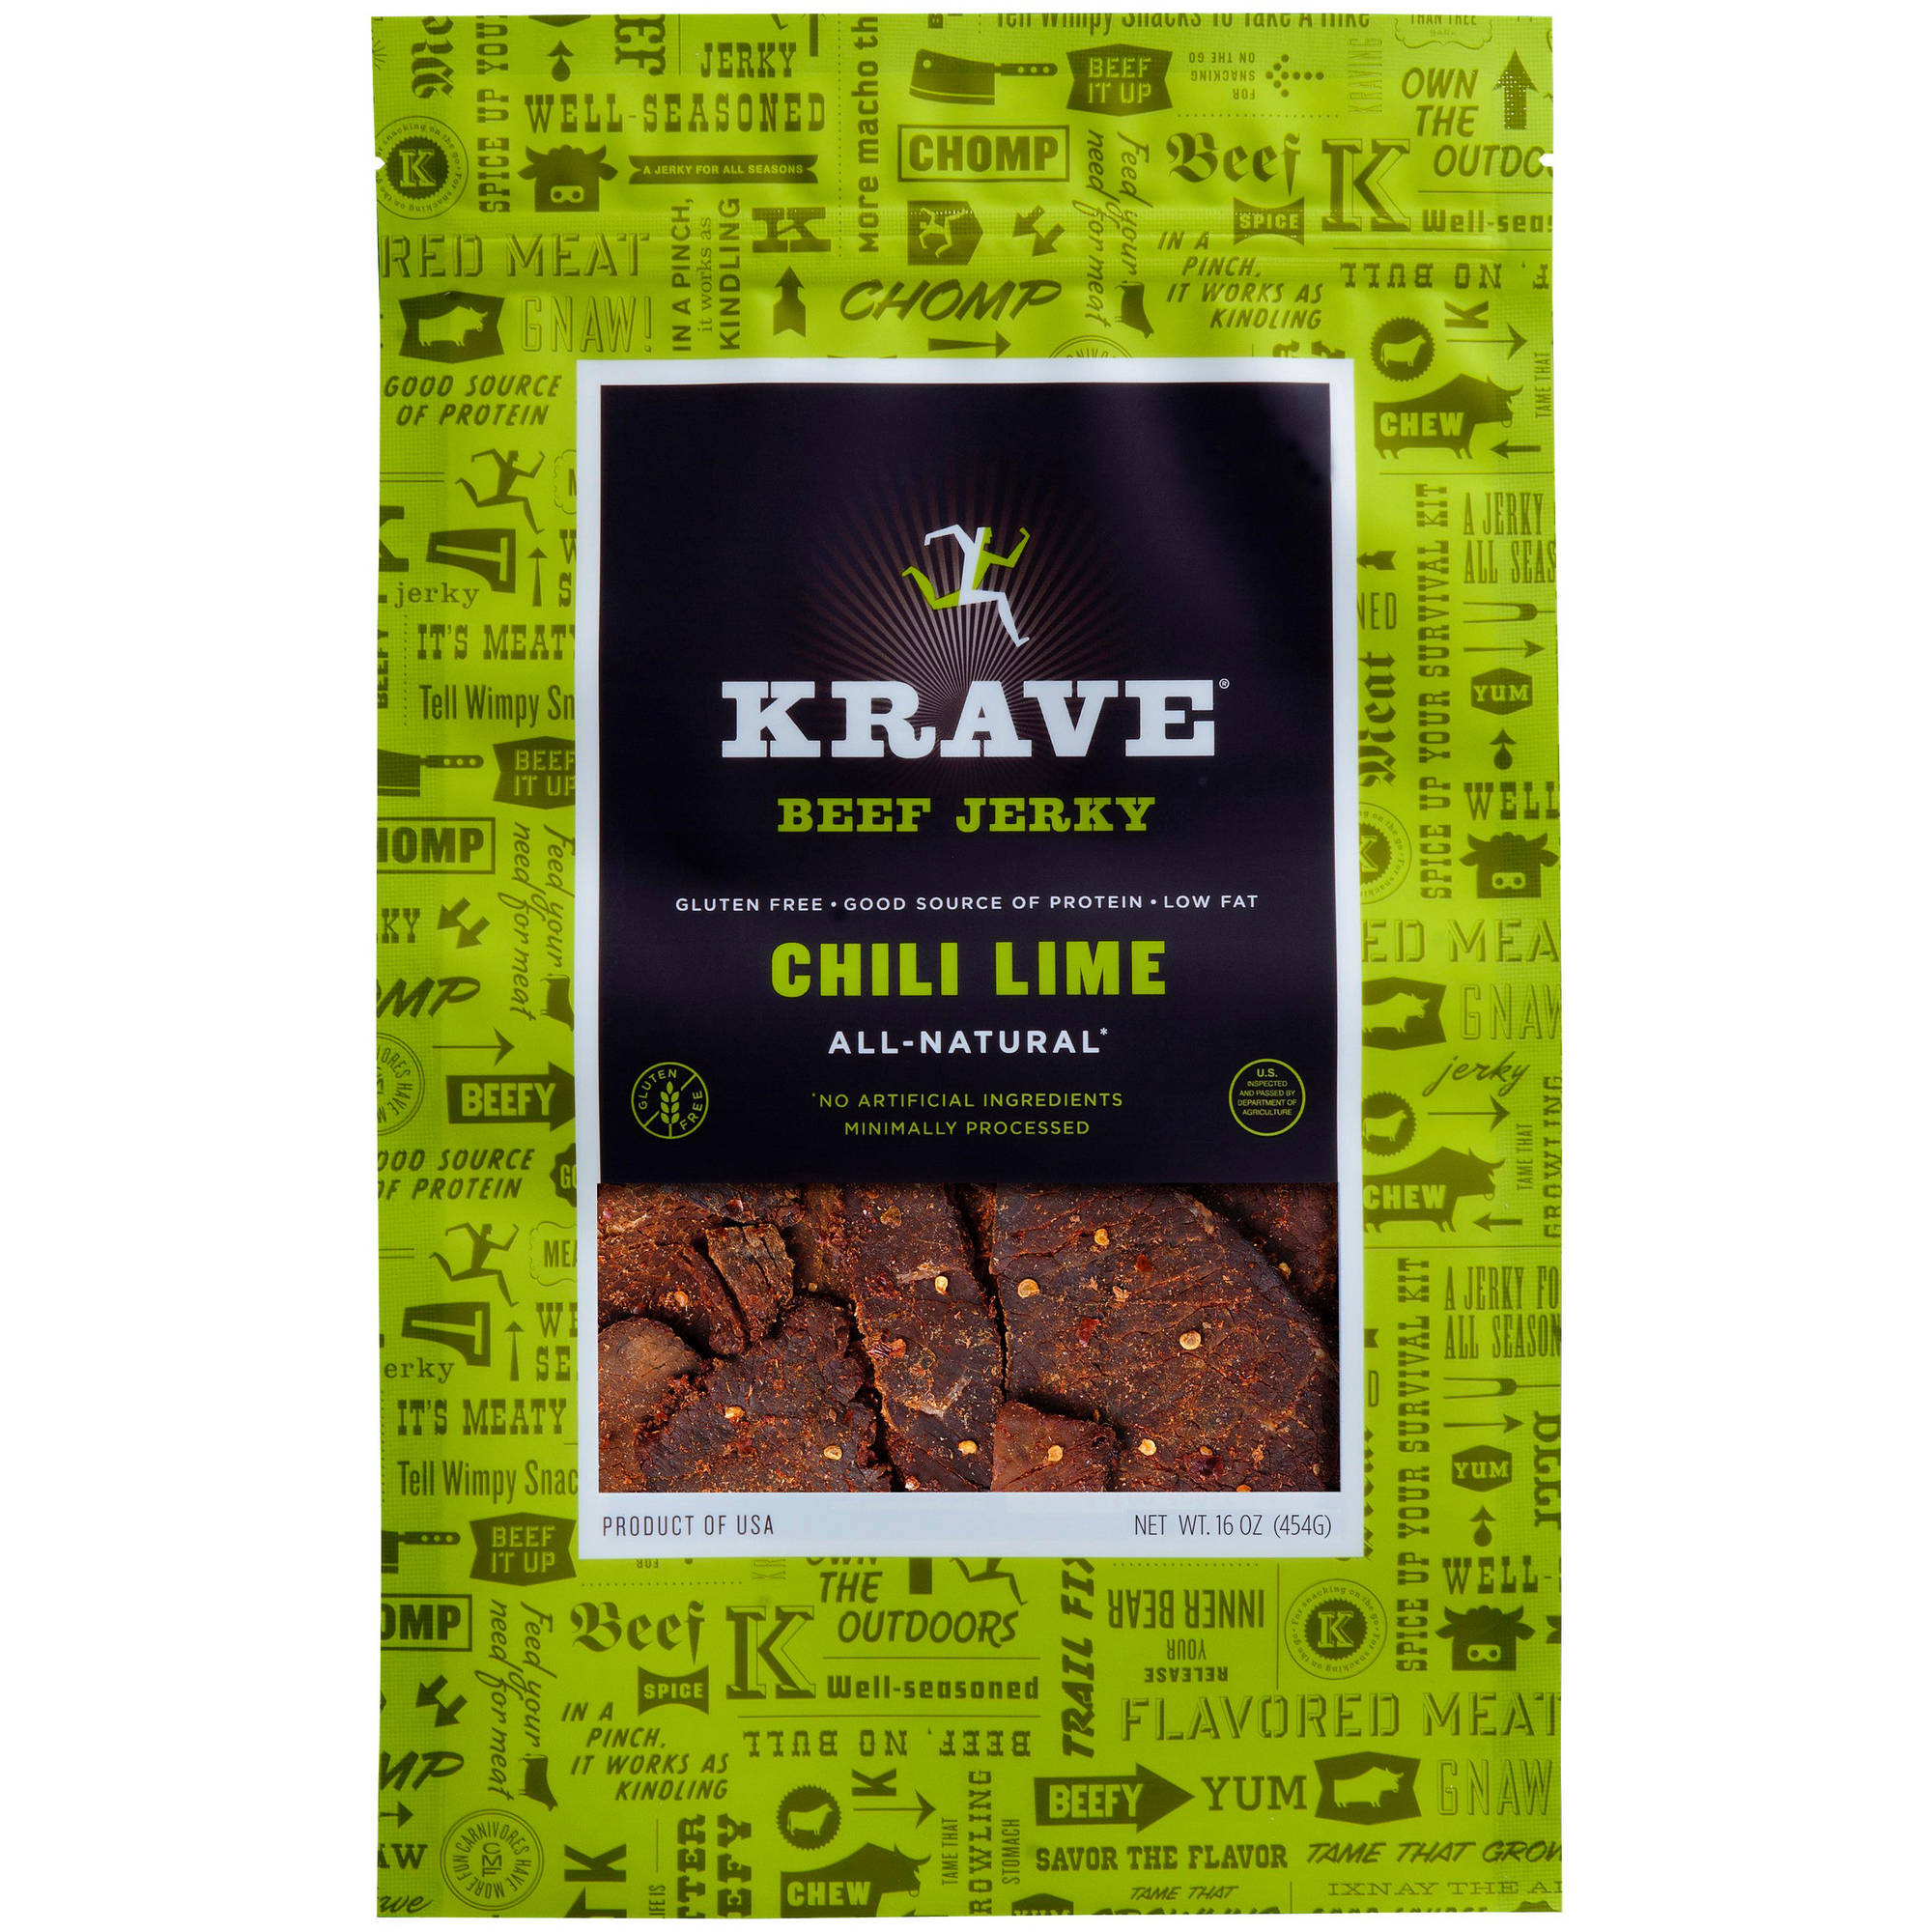 Krave Beef Jerky Chili Lime, 16 oz Online Only by THE HERSHEY CO